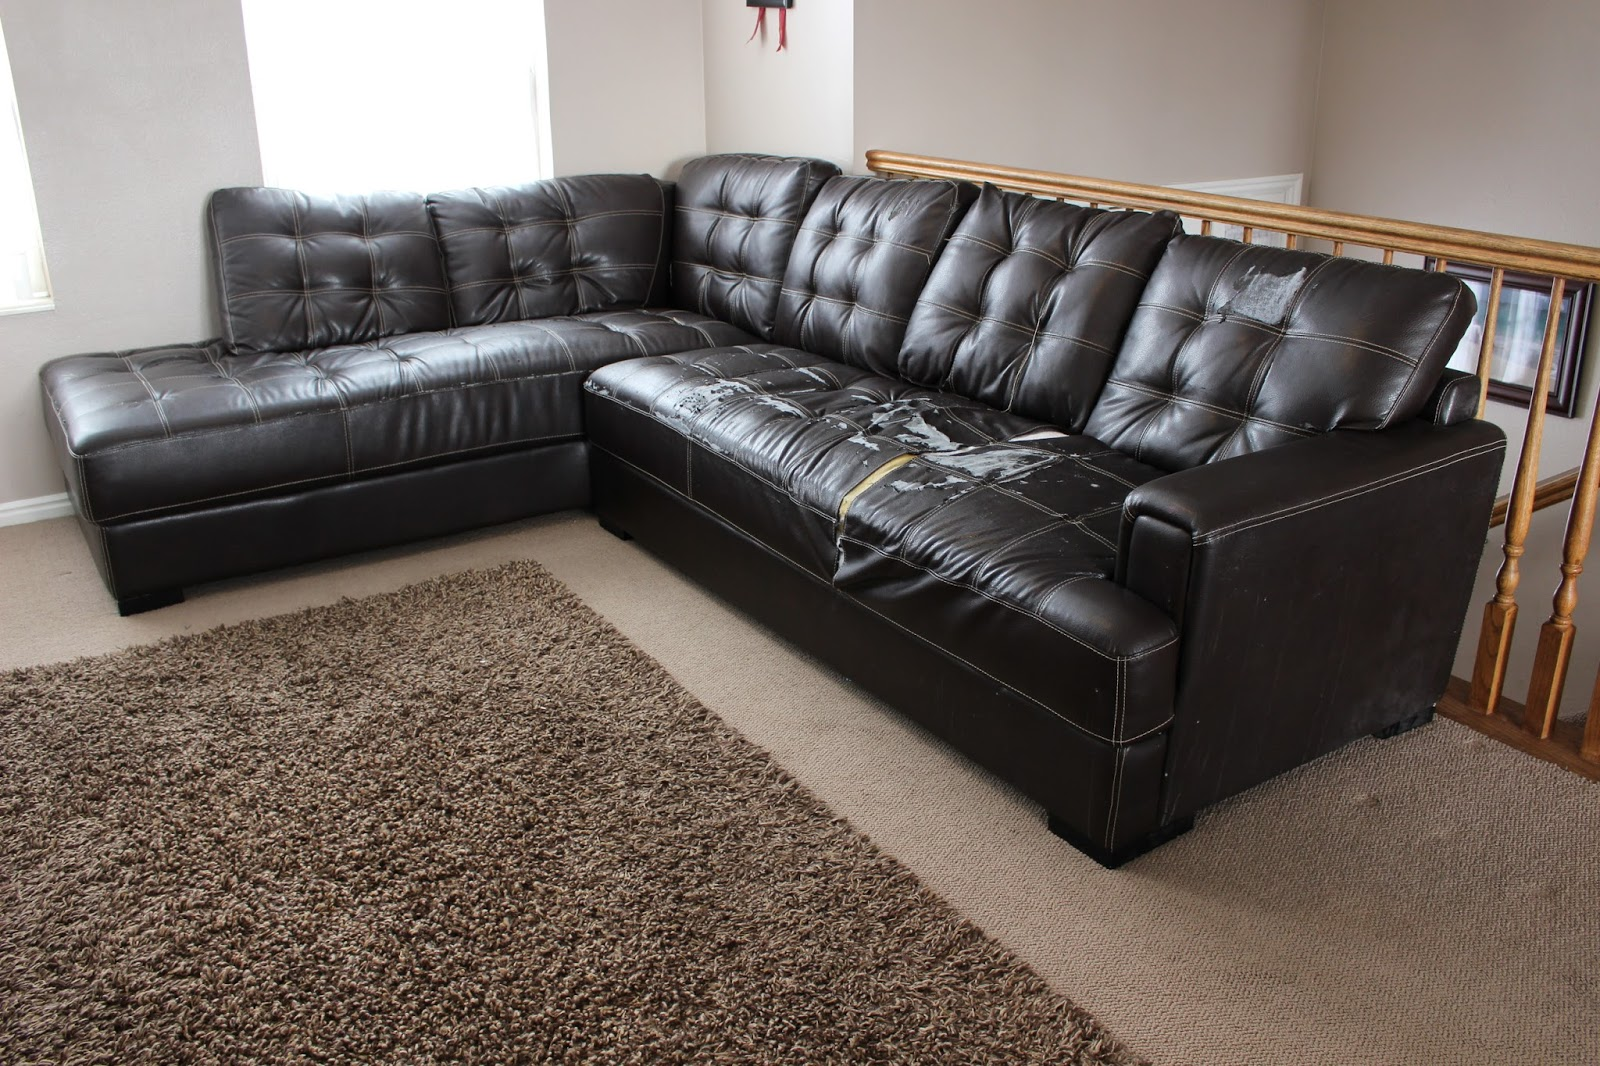 How To Reupholster A Sectional Sofa Interesting Reupholstering A Sectional Sofa 17 With